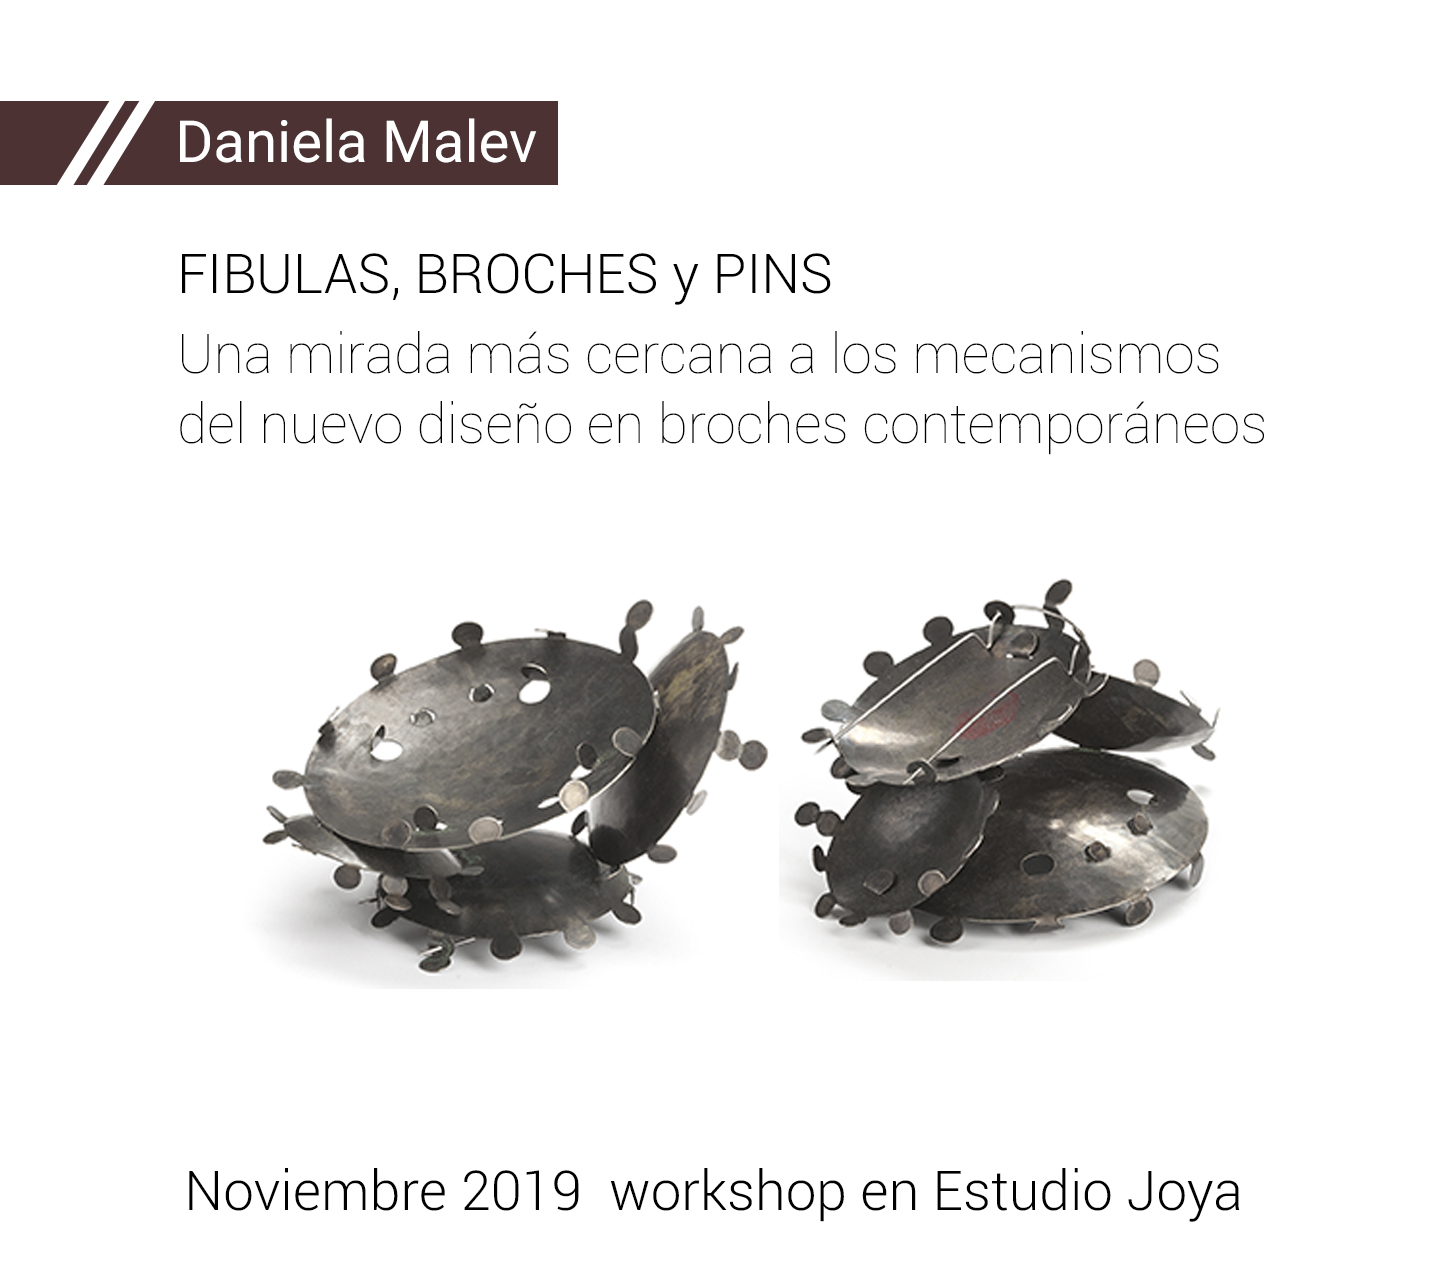 Daniela Malev - Workshop Fibulas, broches y pins.